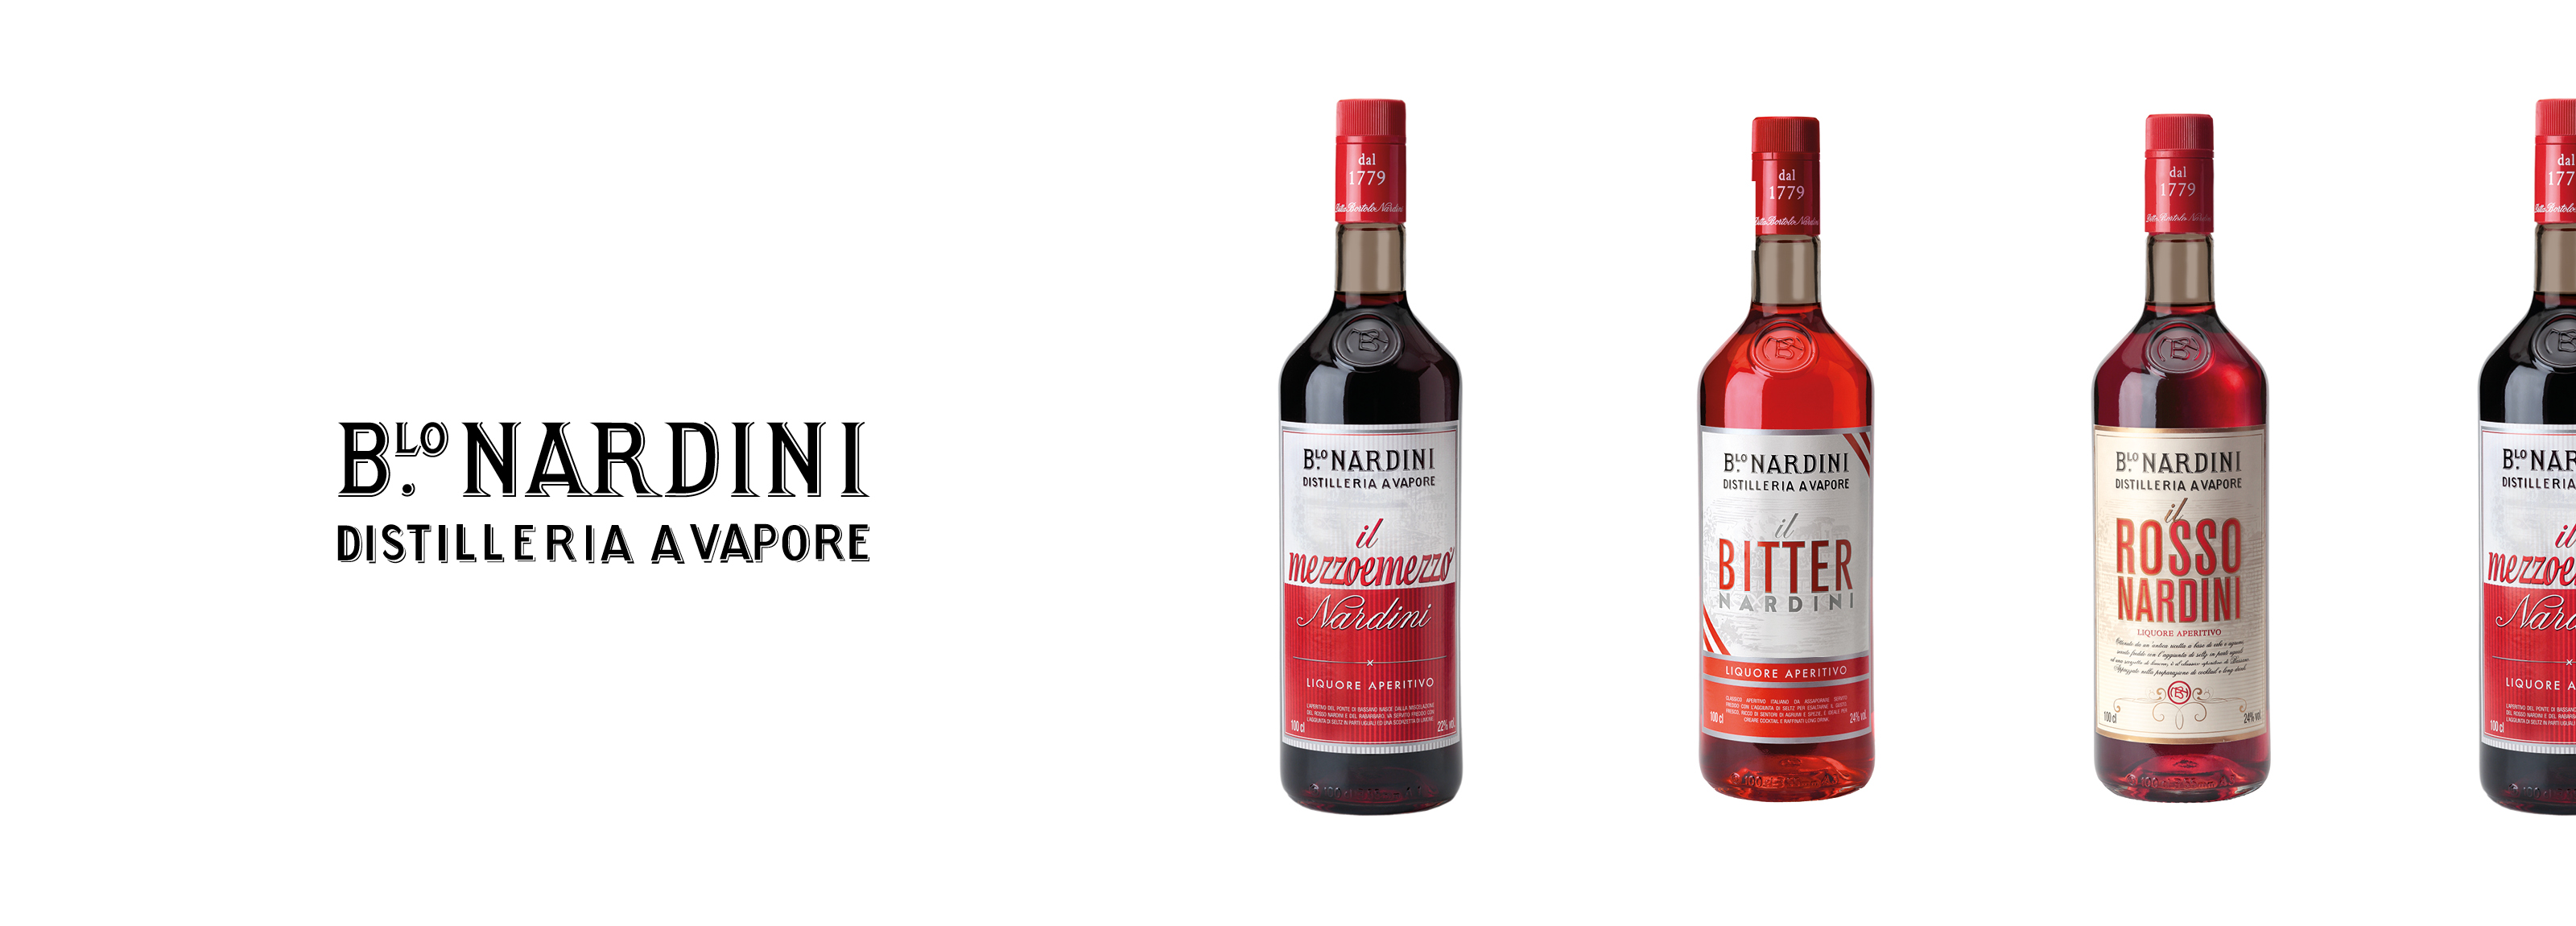 Packaging design targate Hangar Design Group per le 3 etichette di aperitivi Nardini.